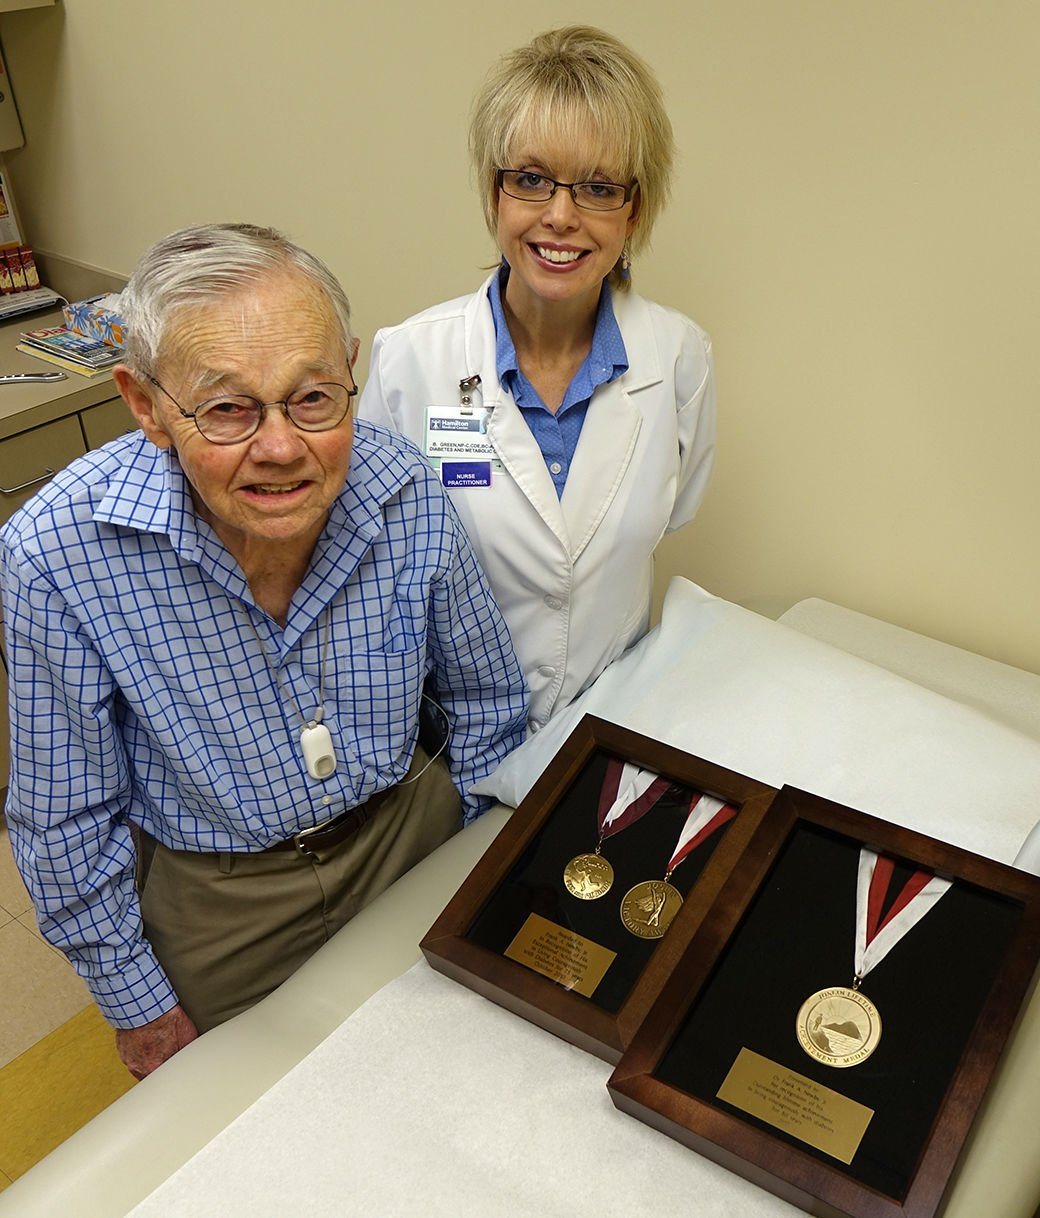 Hamilton Diabetes and Endocrinology Center patient has been living well with diabetes for more than 80 years